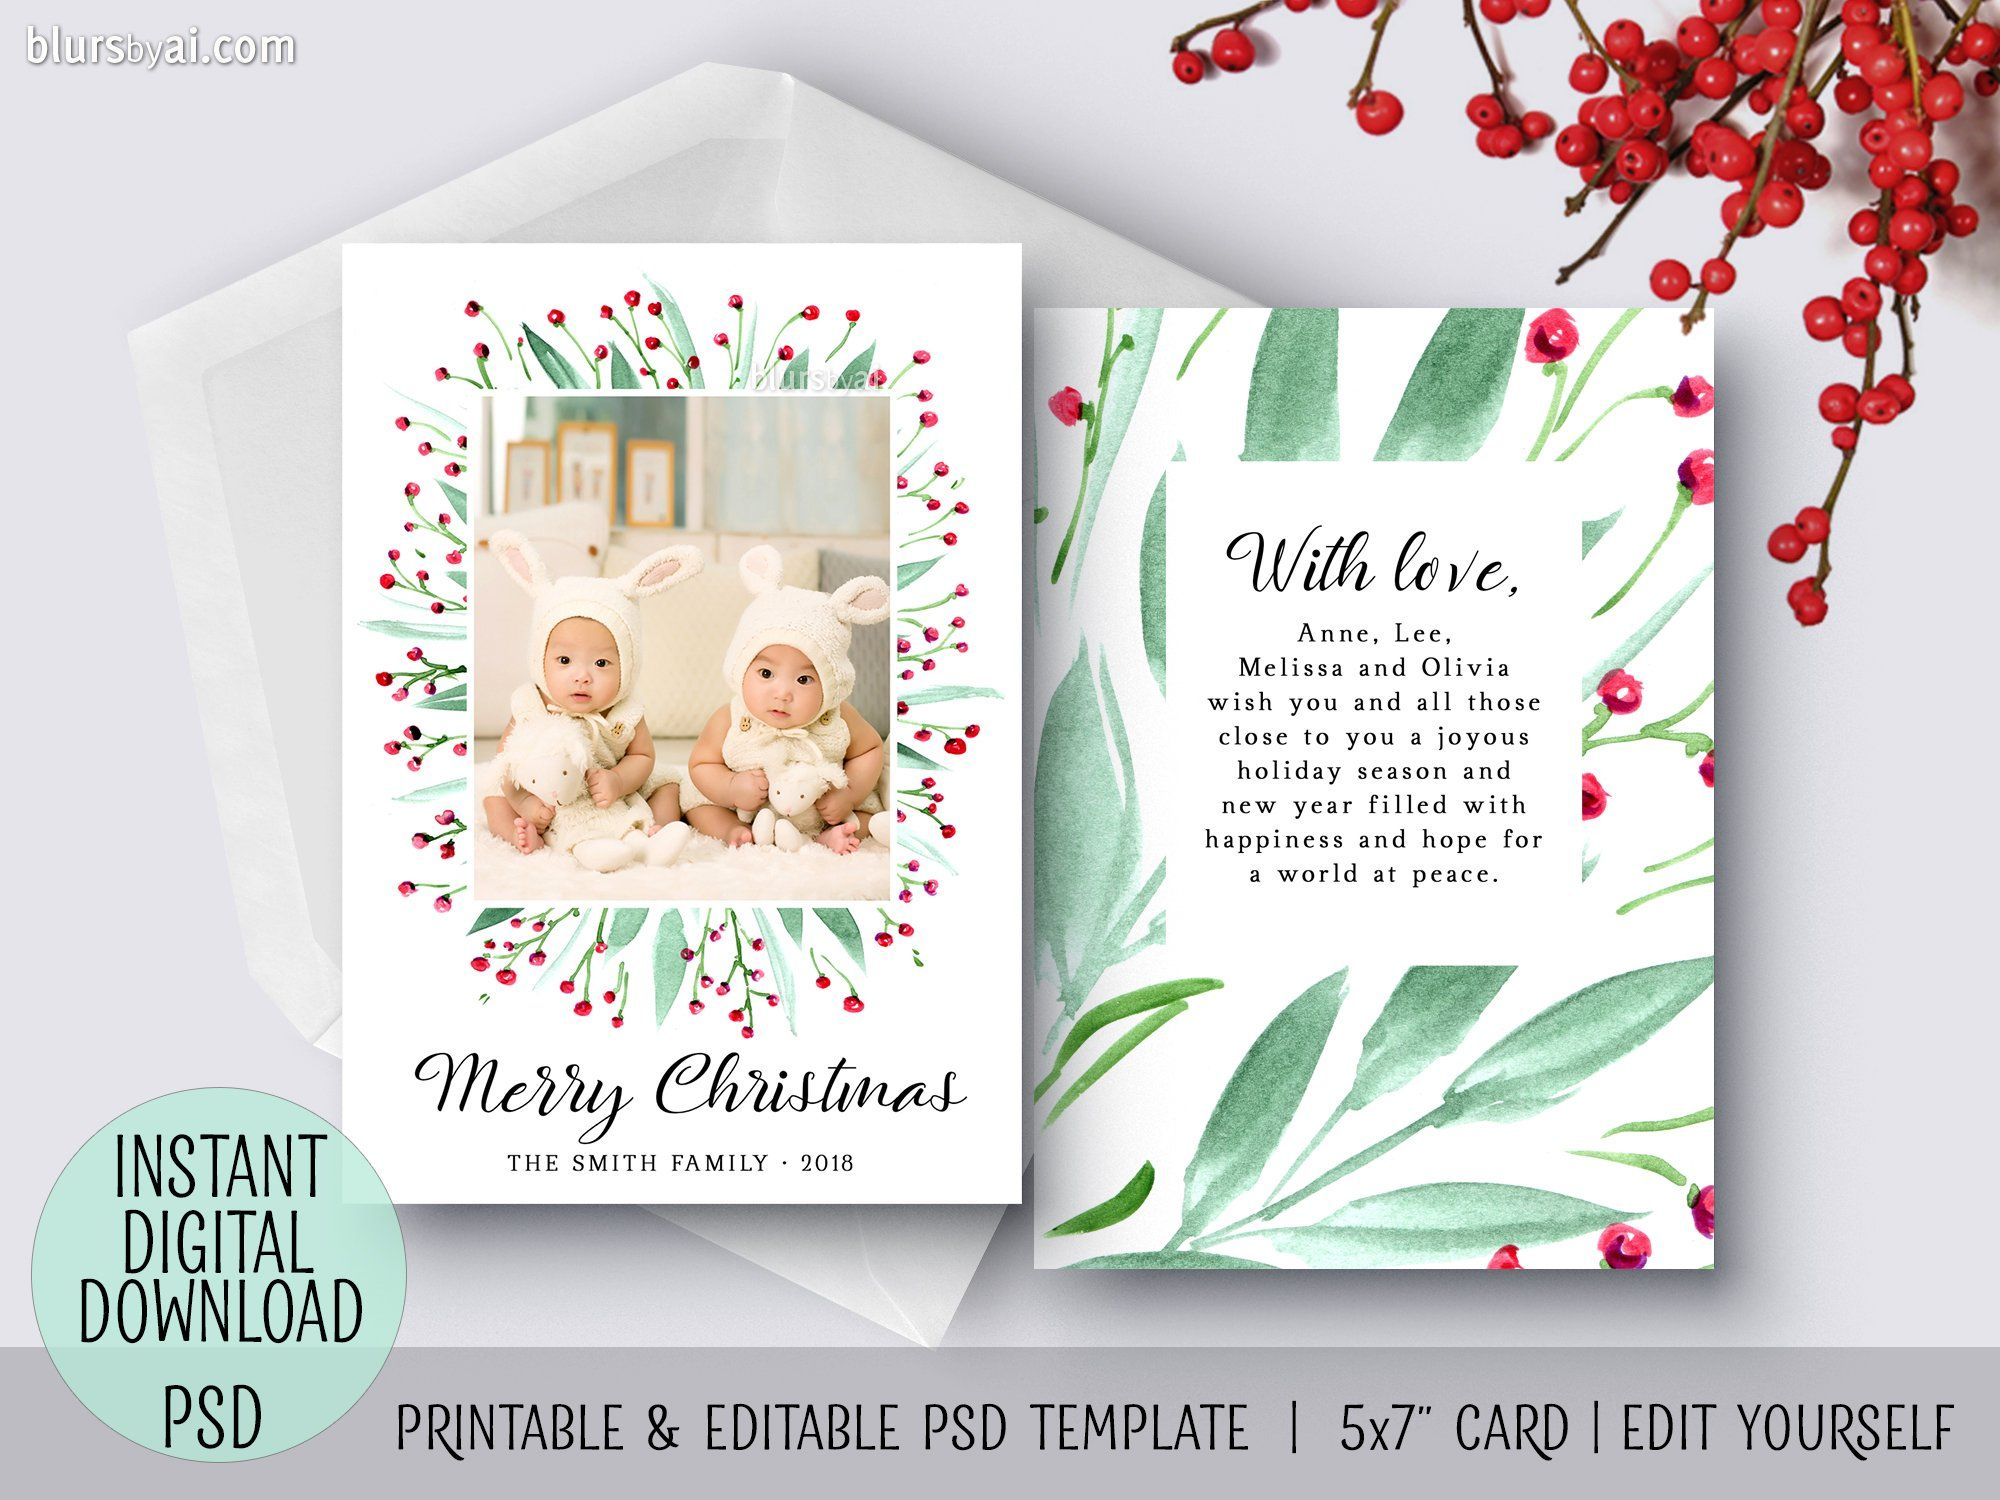 Editable Psd Christmas Card Template Bohemian Watercolor Bouquet Christmas Photo Card Template Christmas Card Template Photo Card Template